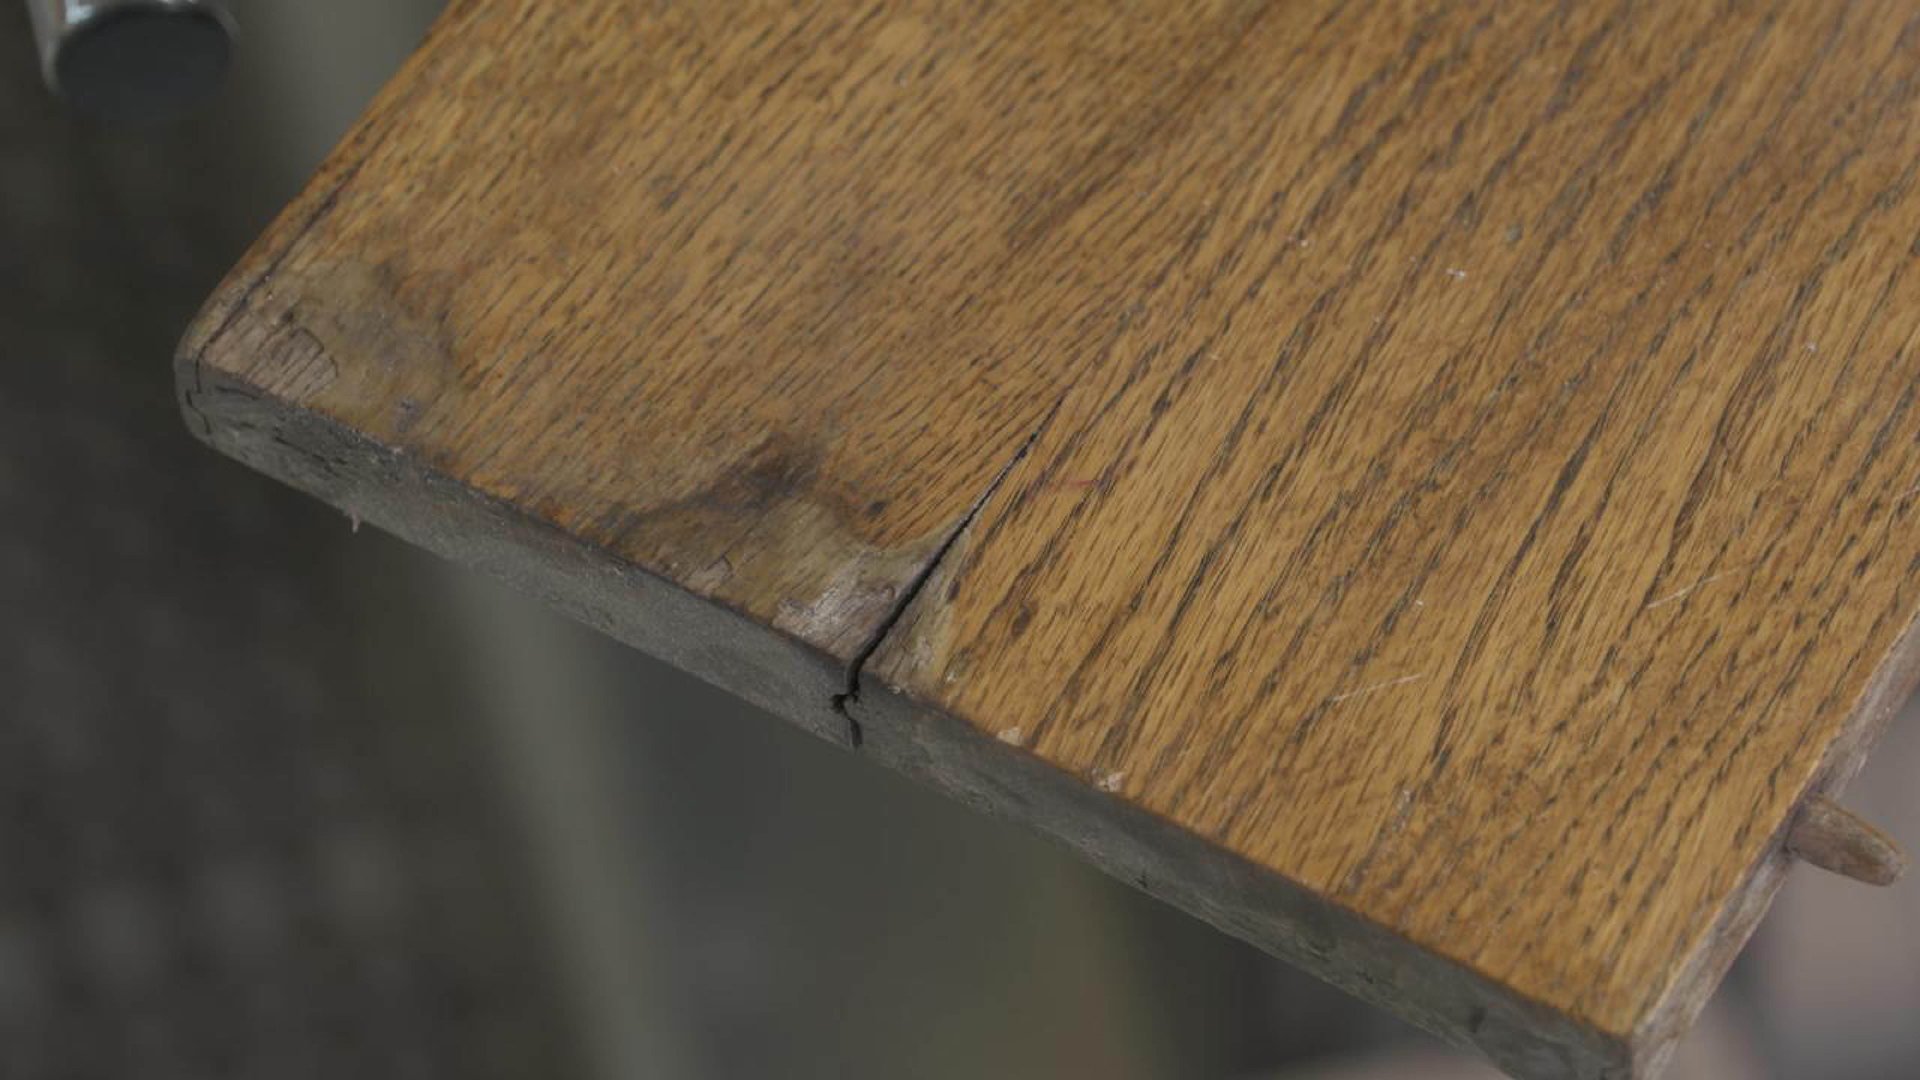 Woodworking Restoration Guide - Repairing a Cracked Table Leaf